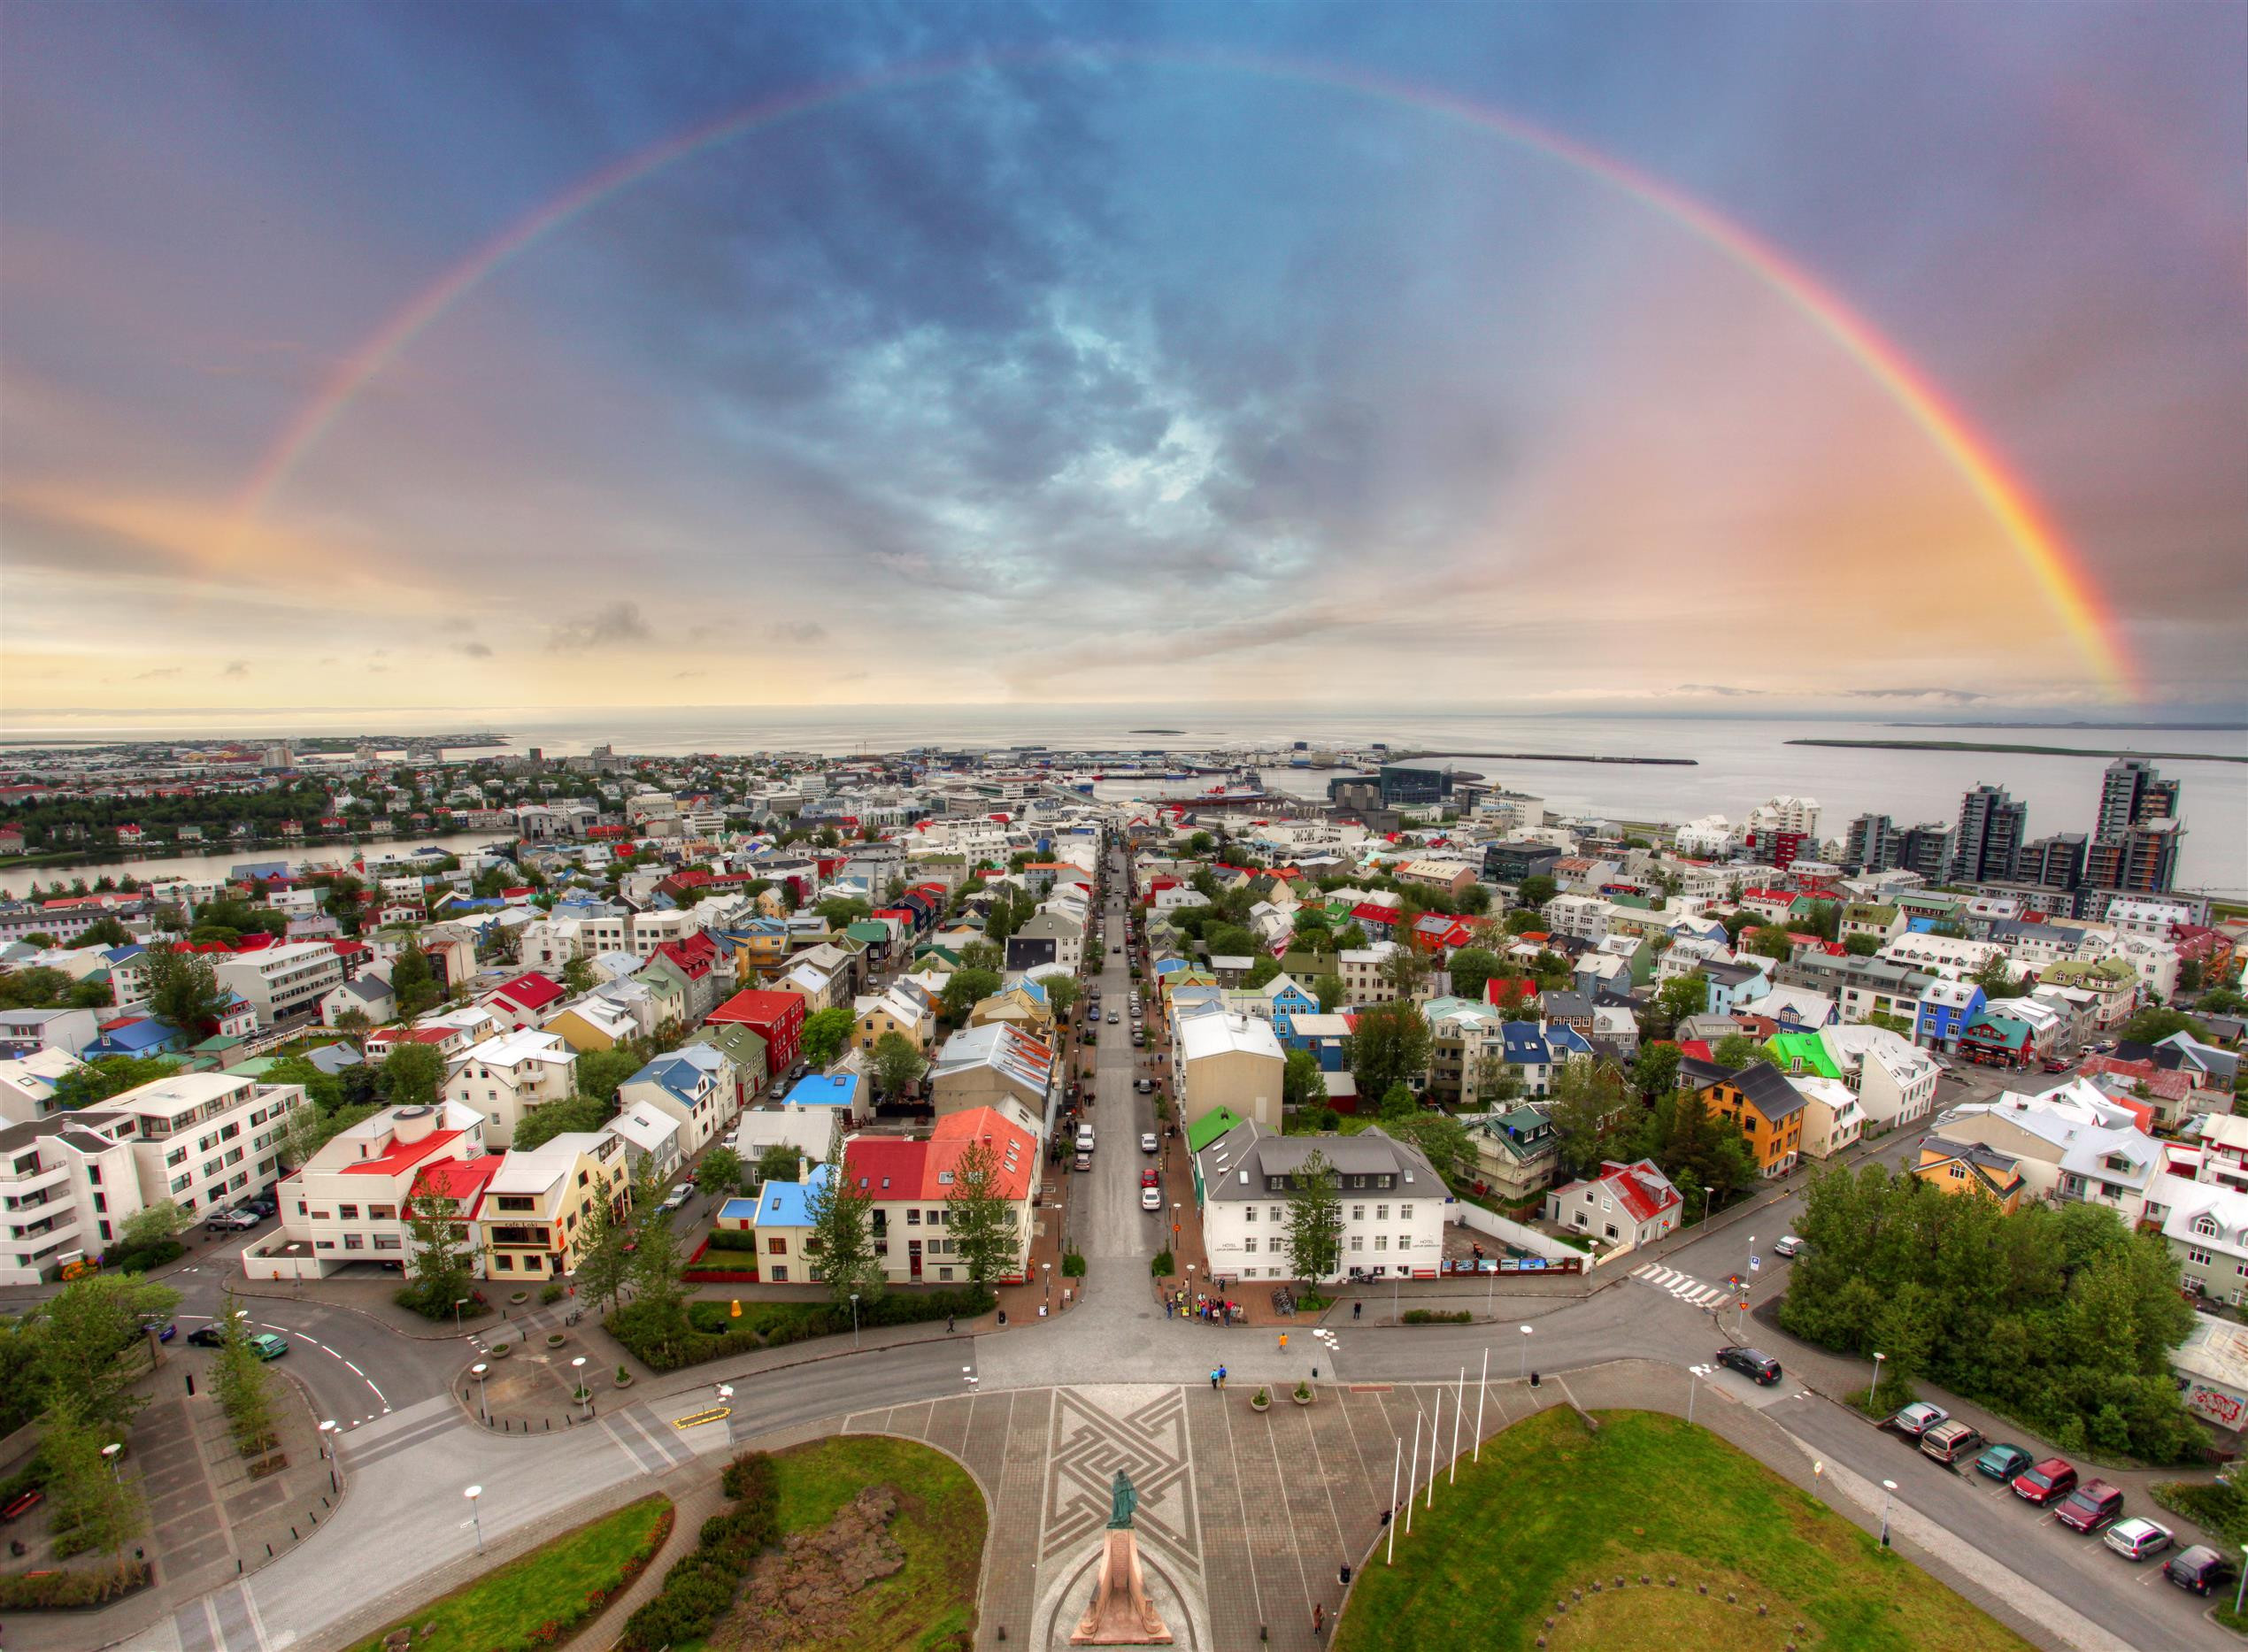 3rd happiest city in europe Reykjavik